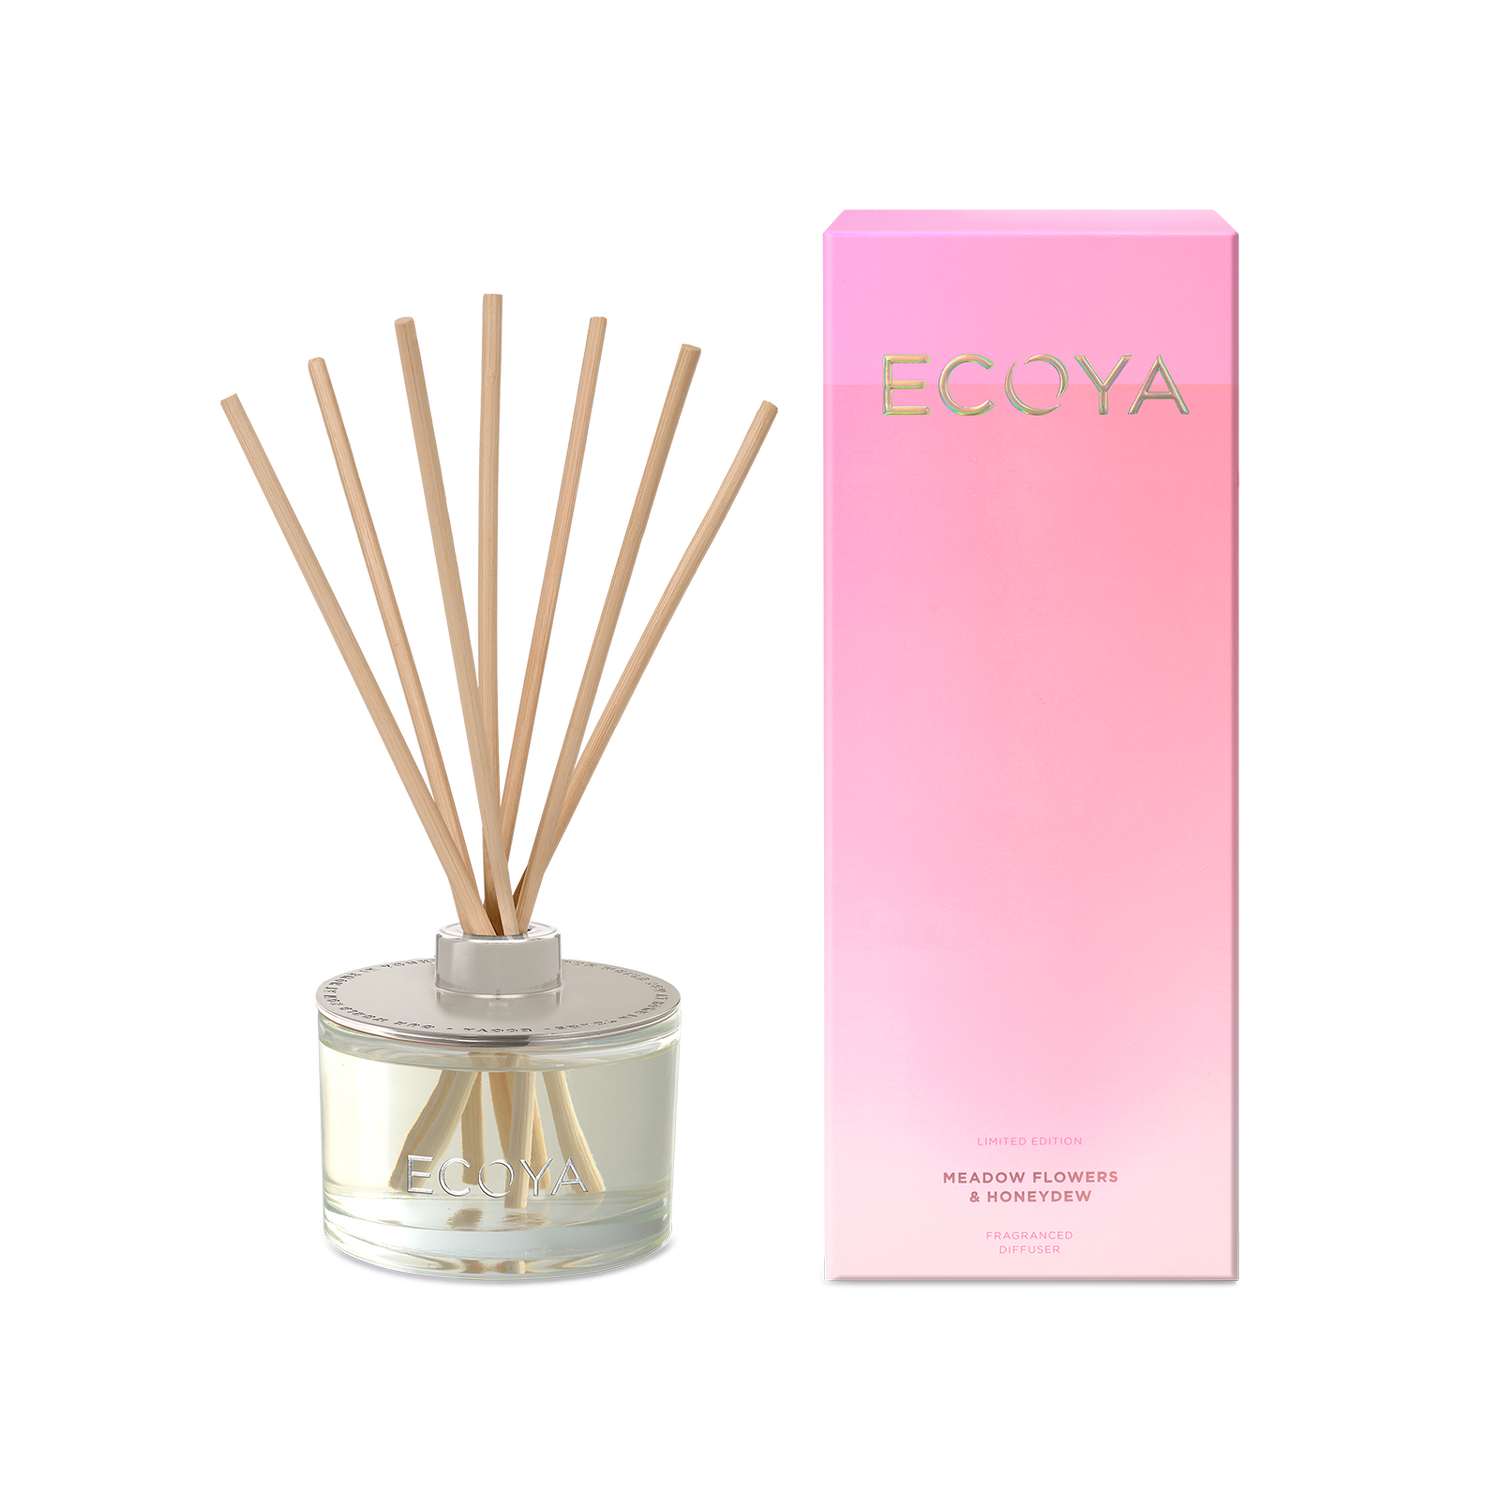 ECOYA fragranced diffusers